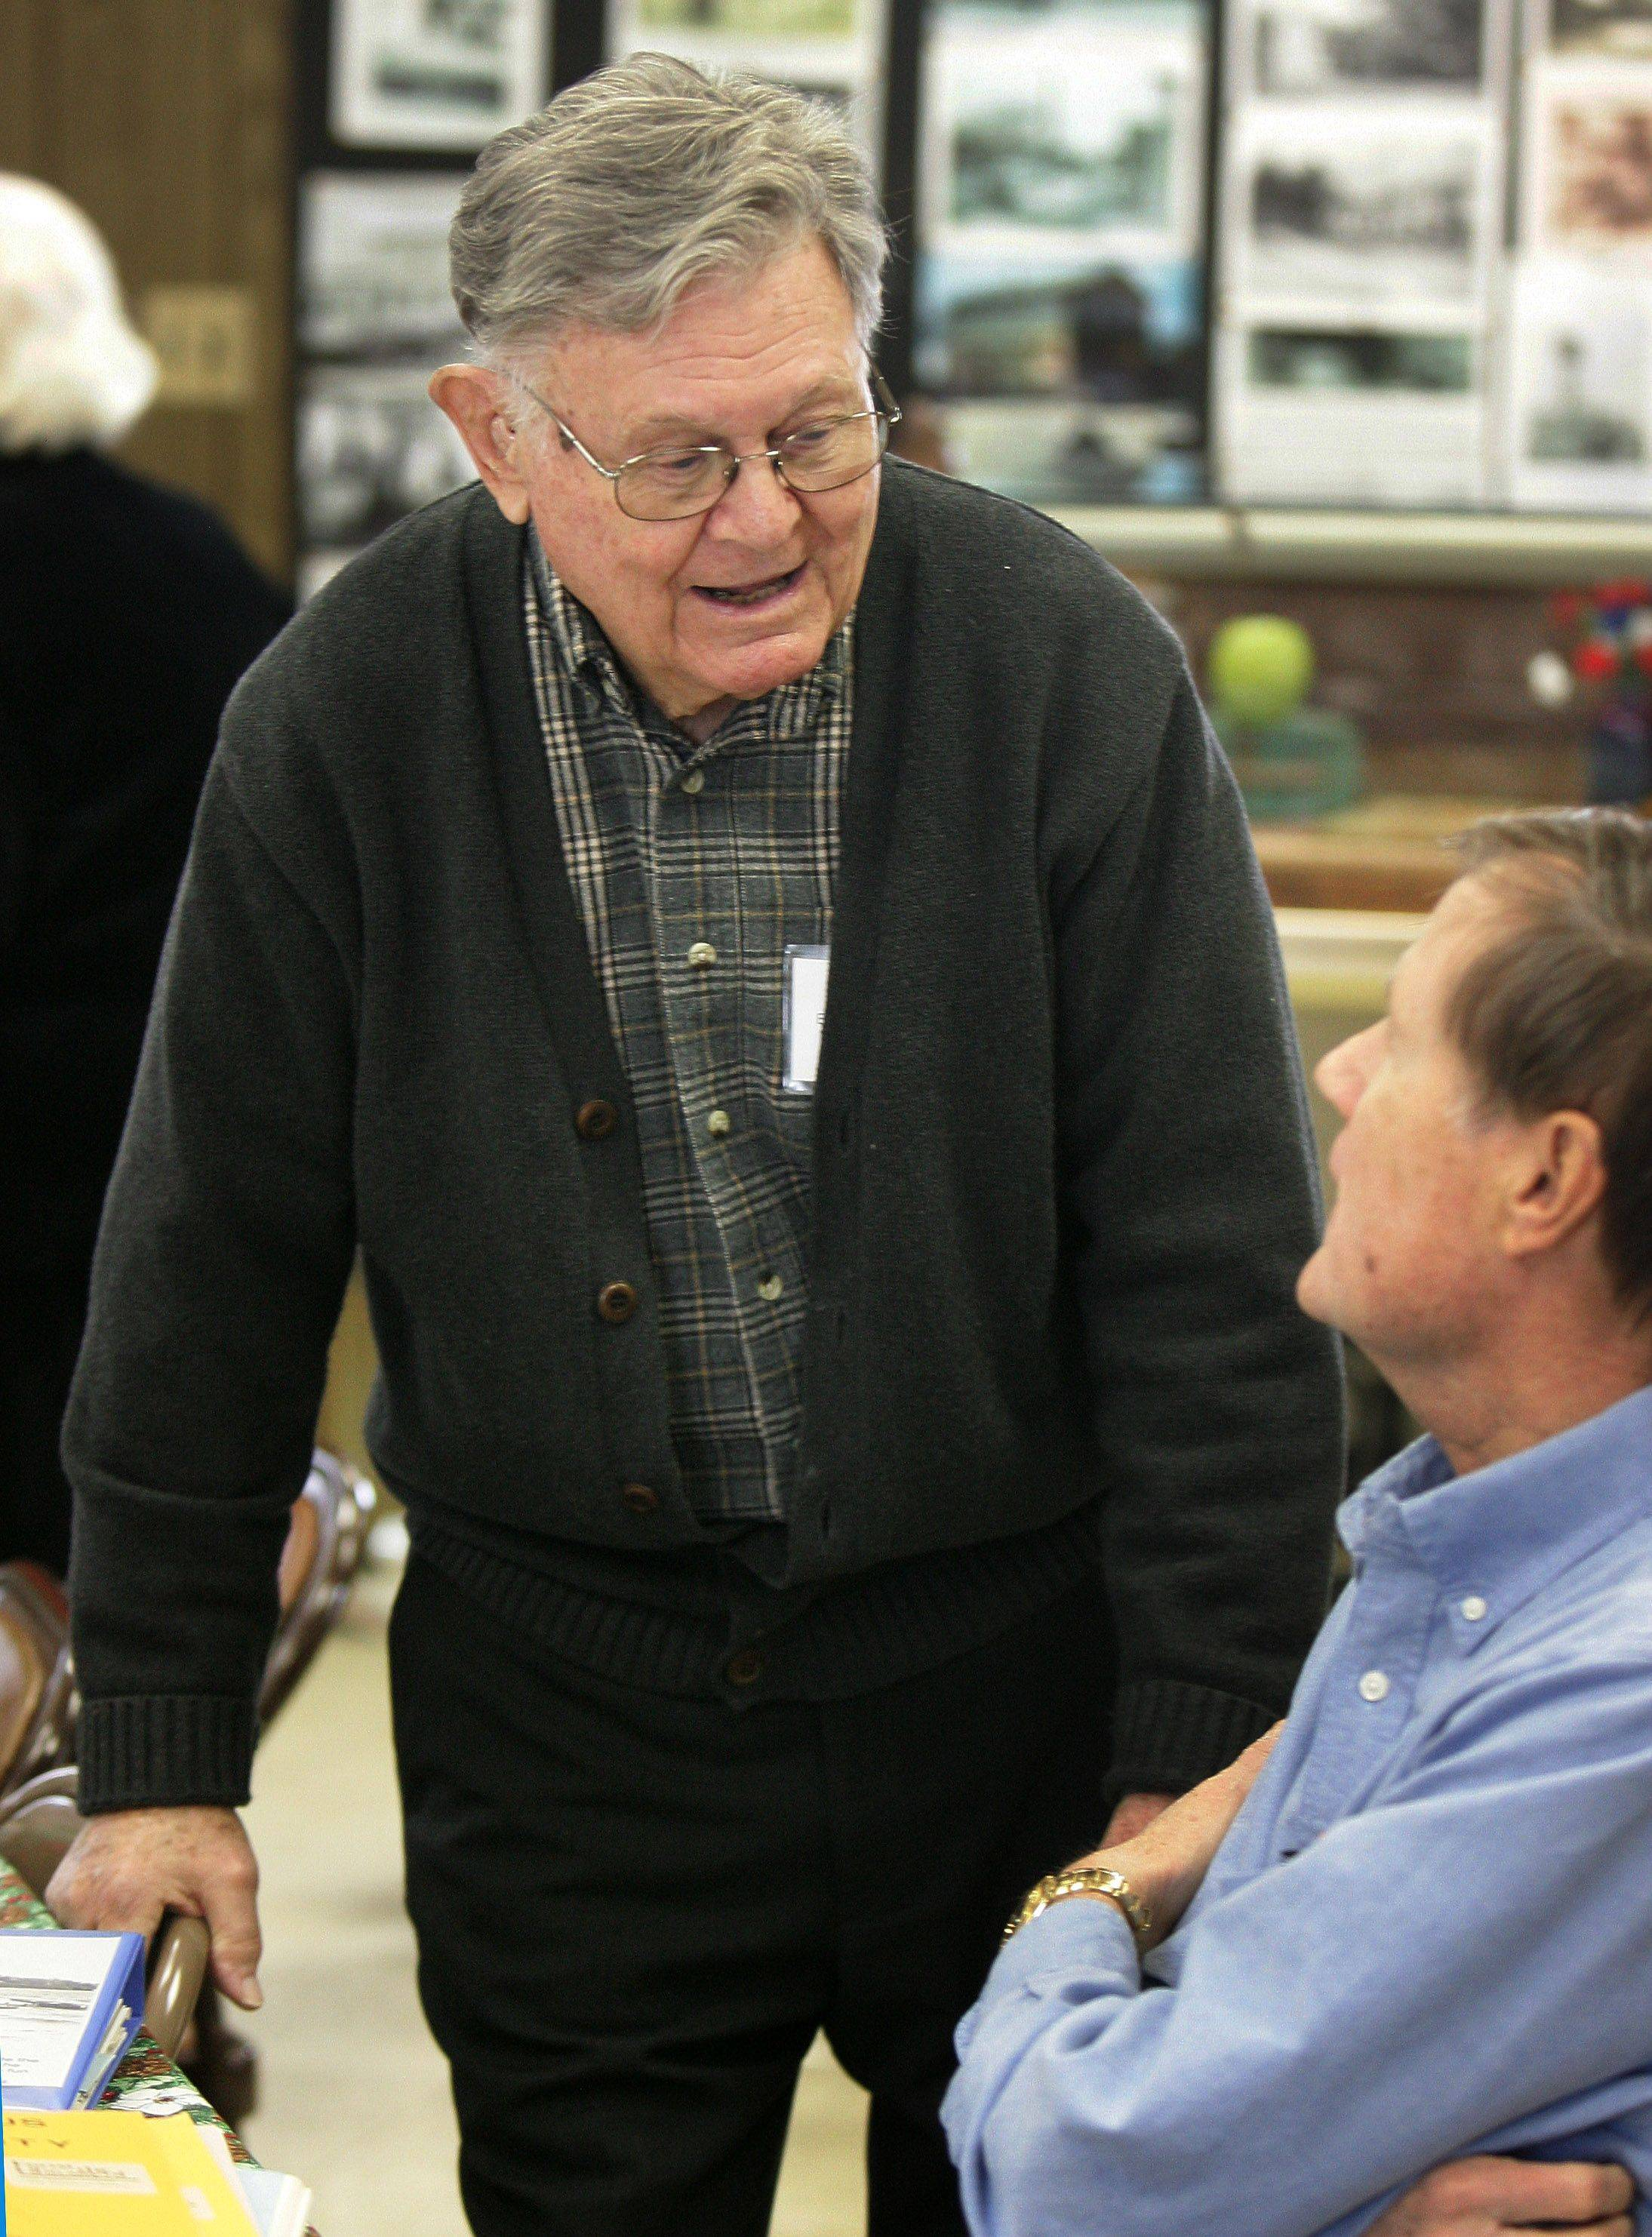 Dale Blau, the oldest living resident born in Lake Zurich, talks to Roger L. Knigge during the Ela Historical Society Open House Sunday in Lake Zurich.